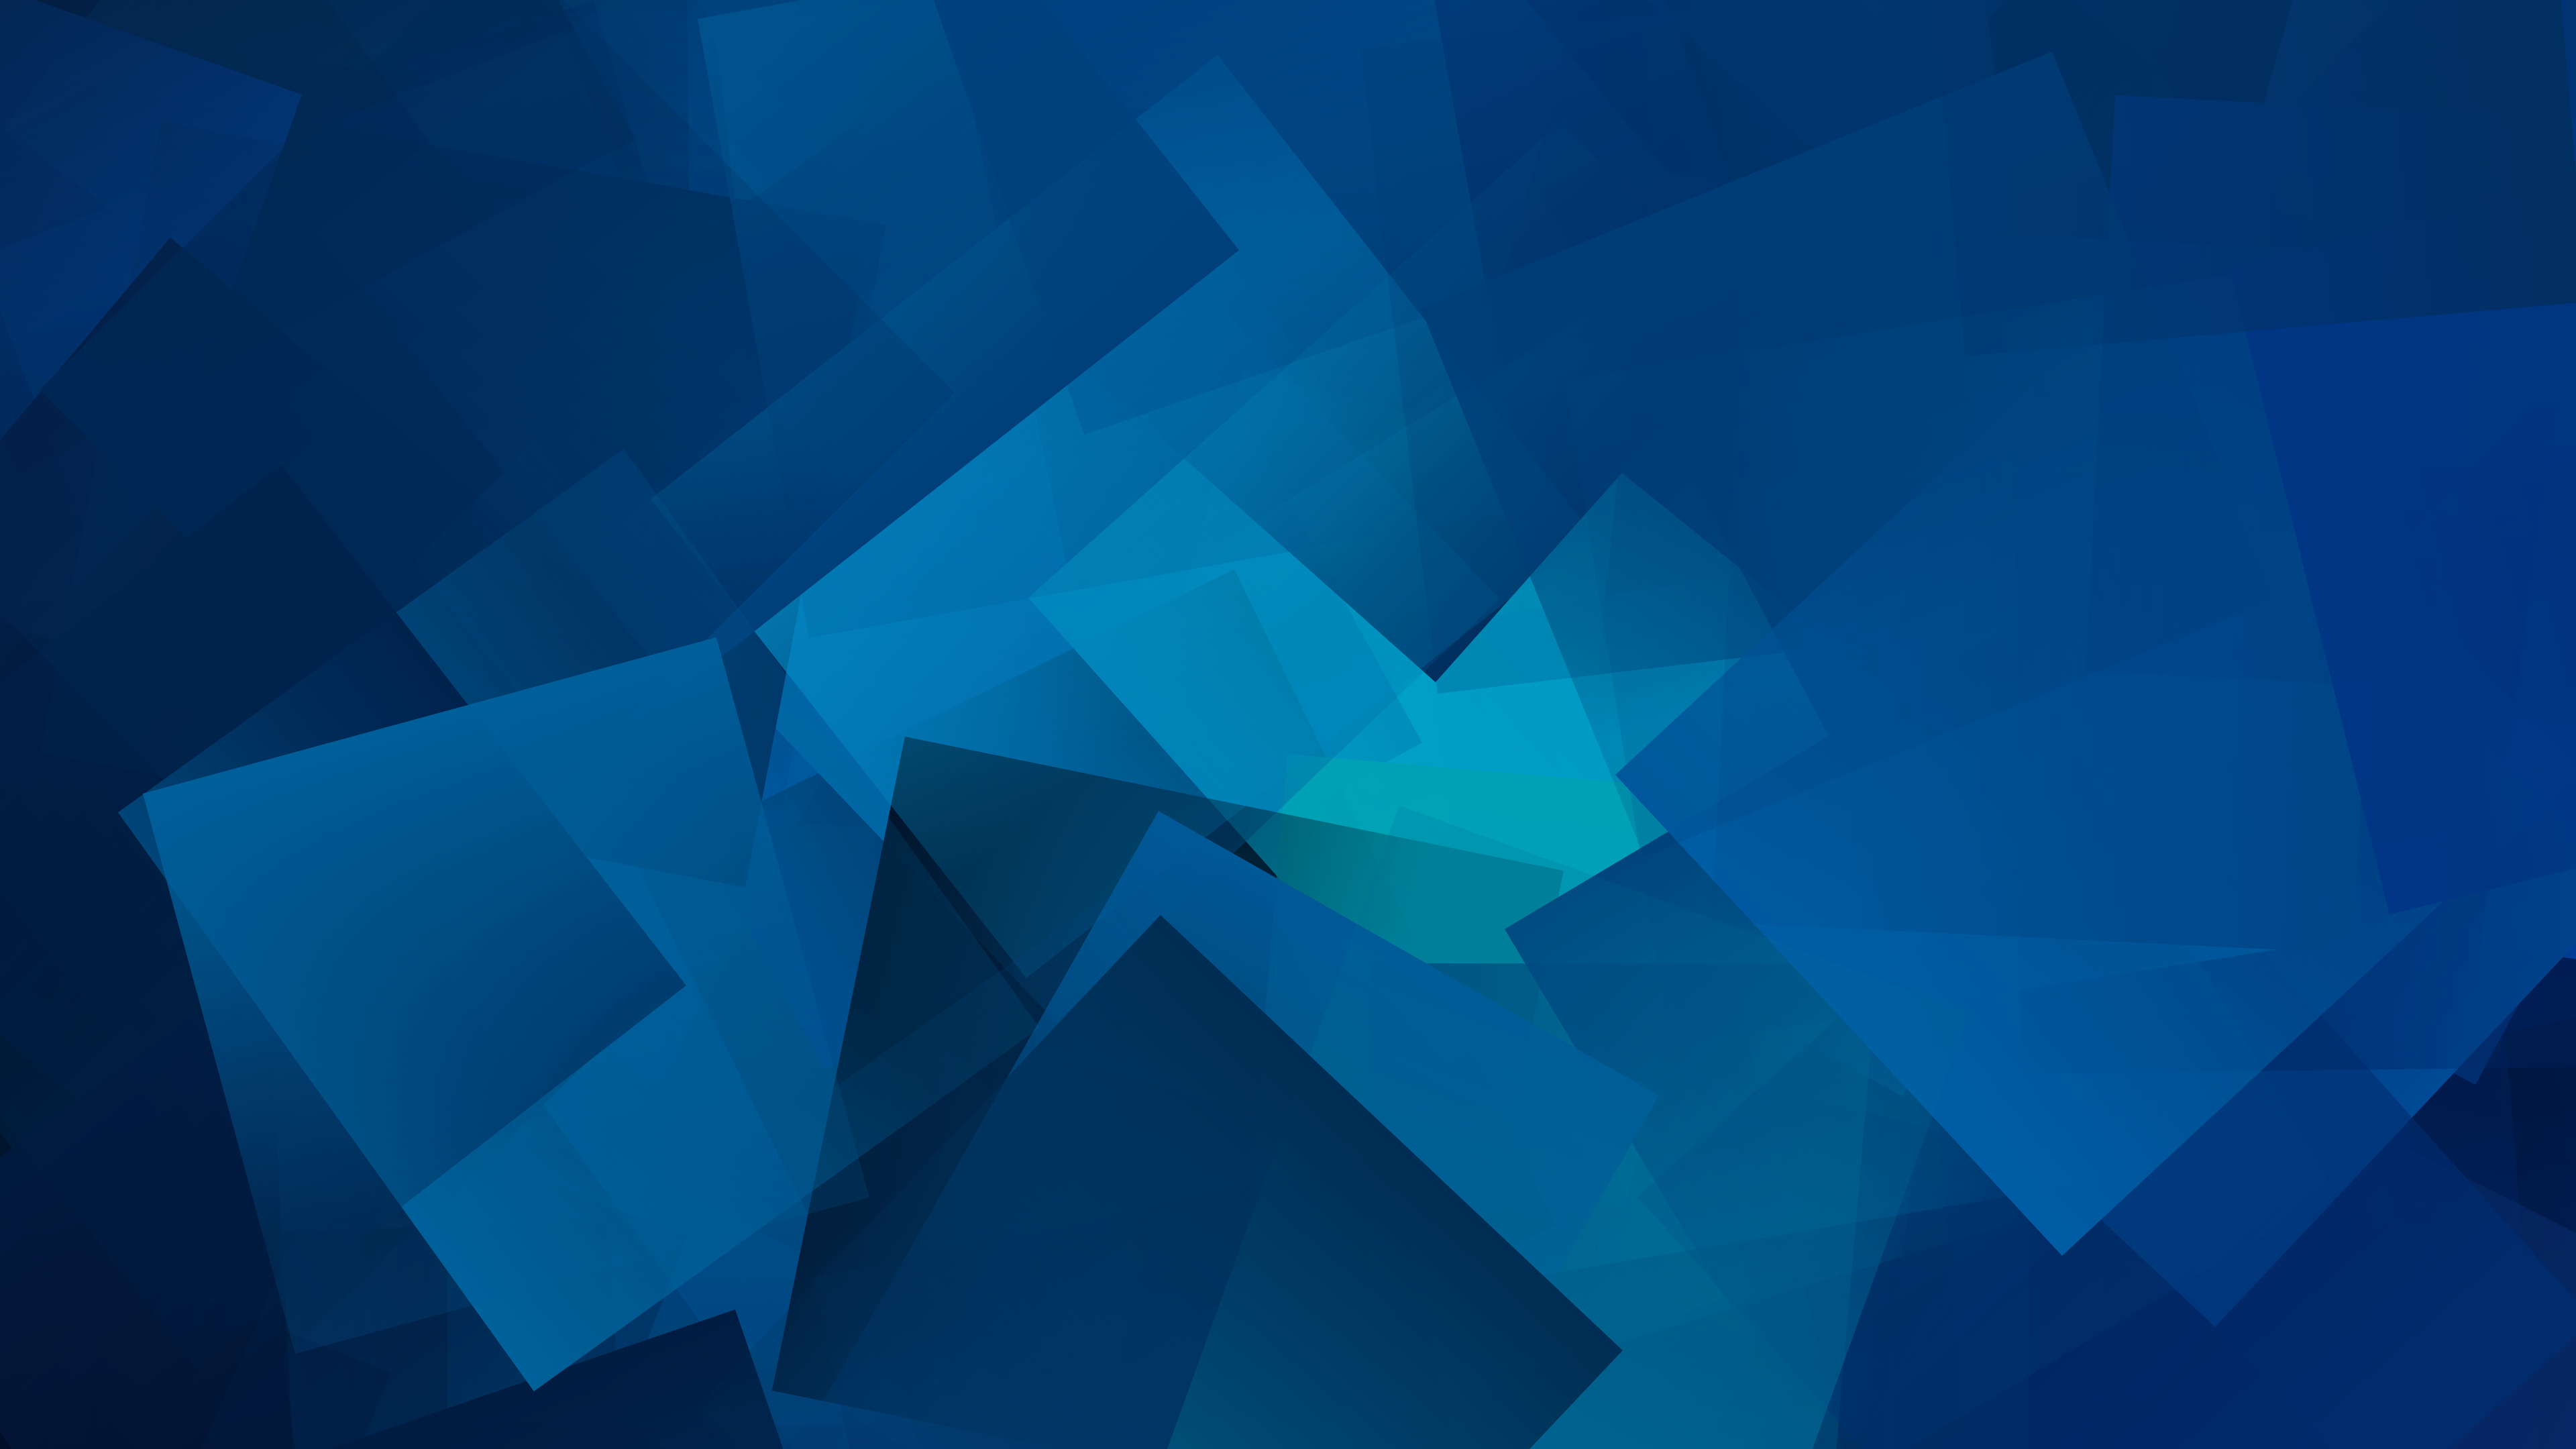 Blue Geometic Cubes 4K